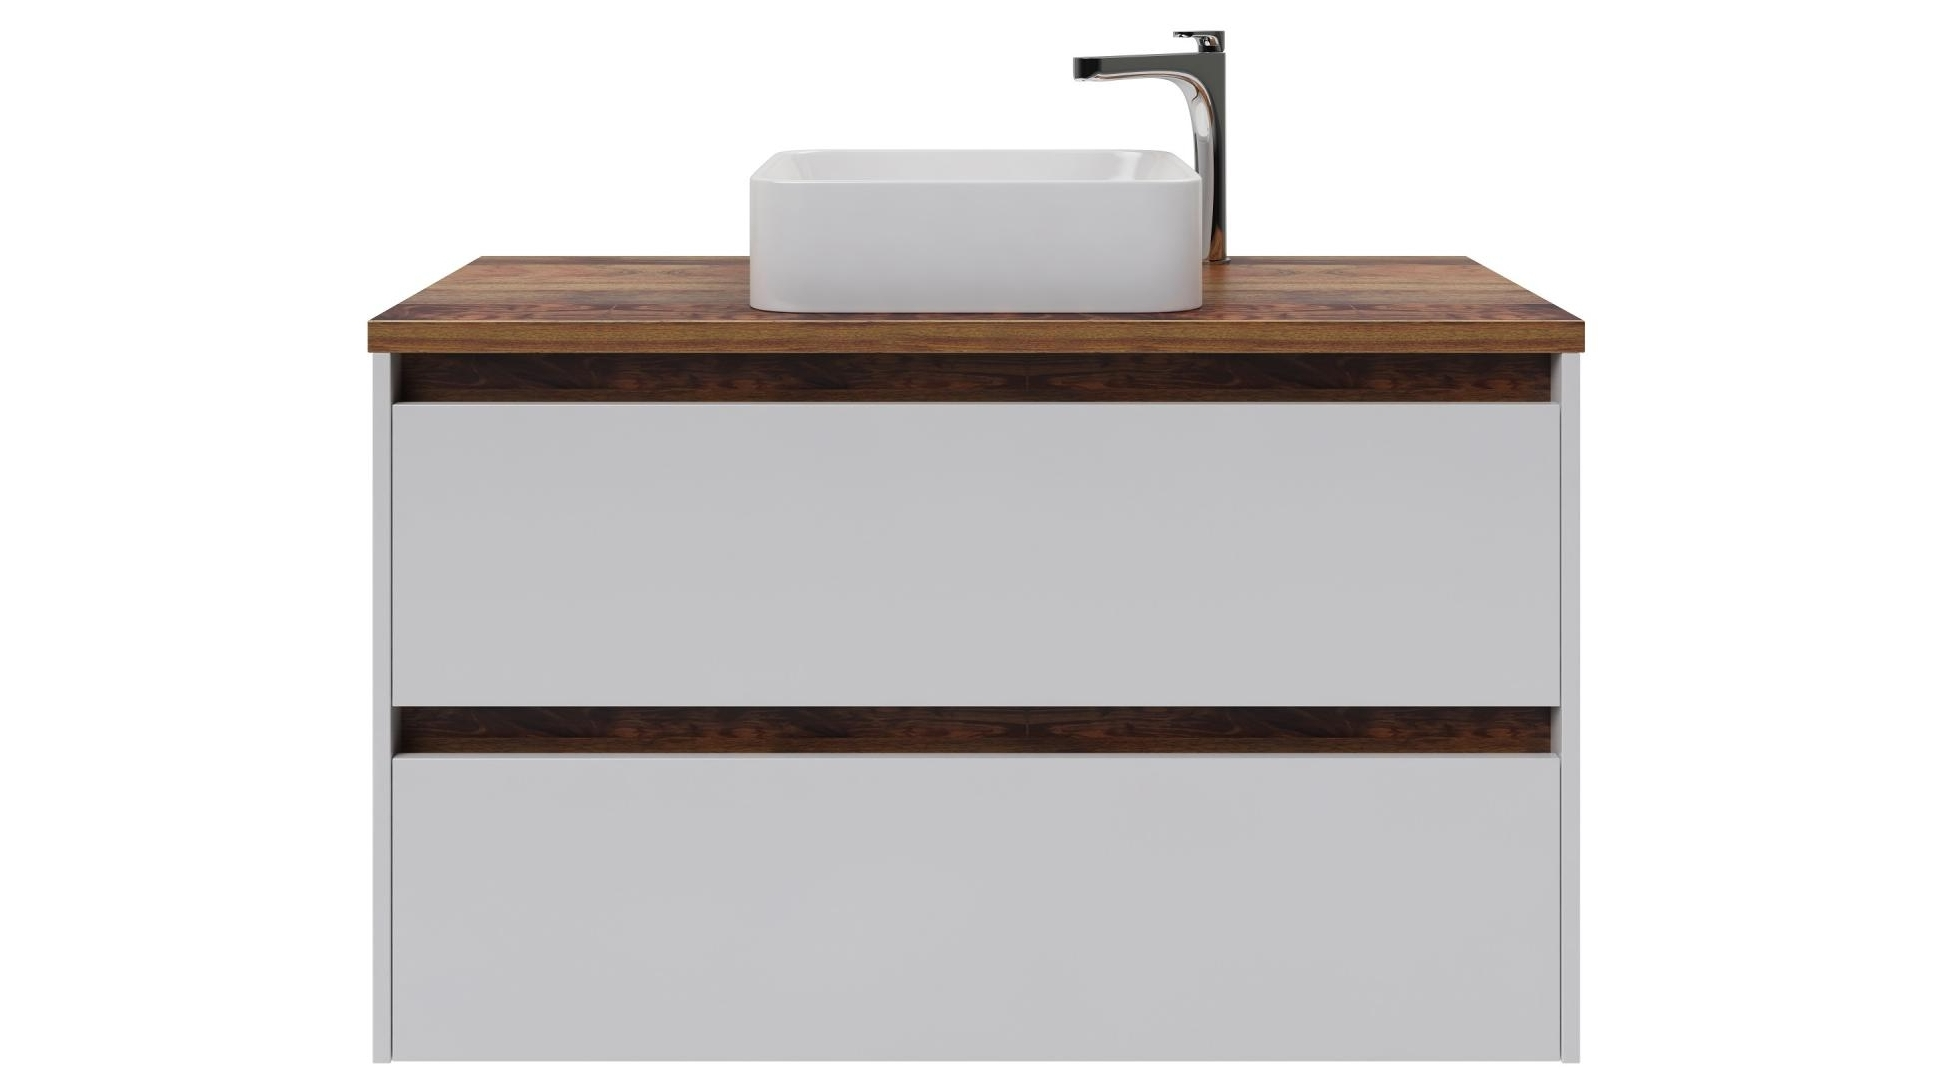 Buy Rifco Infinity 900mm Wall Hung Vanity | Harvey Norman AU